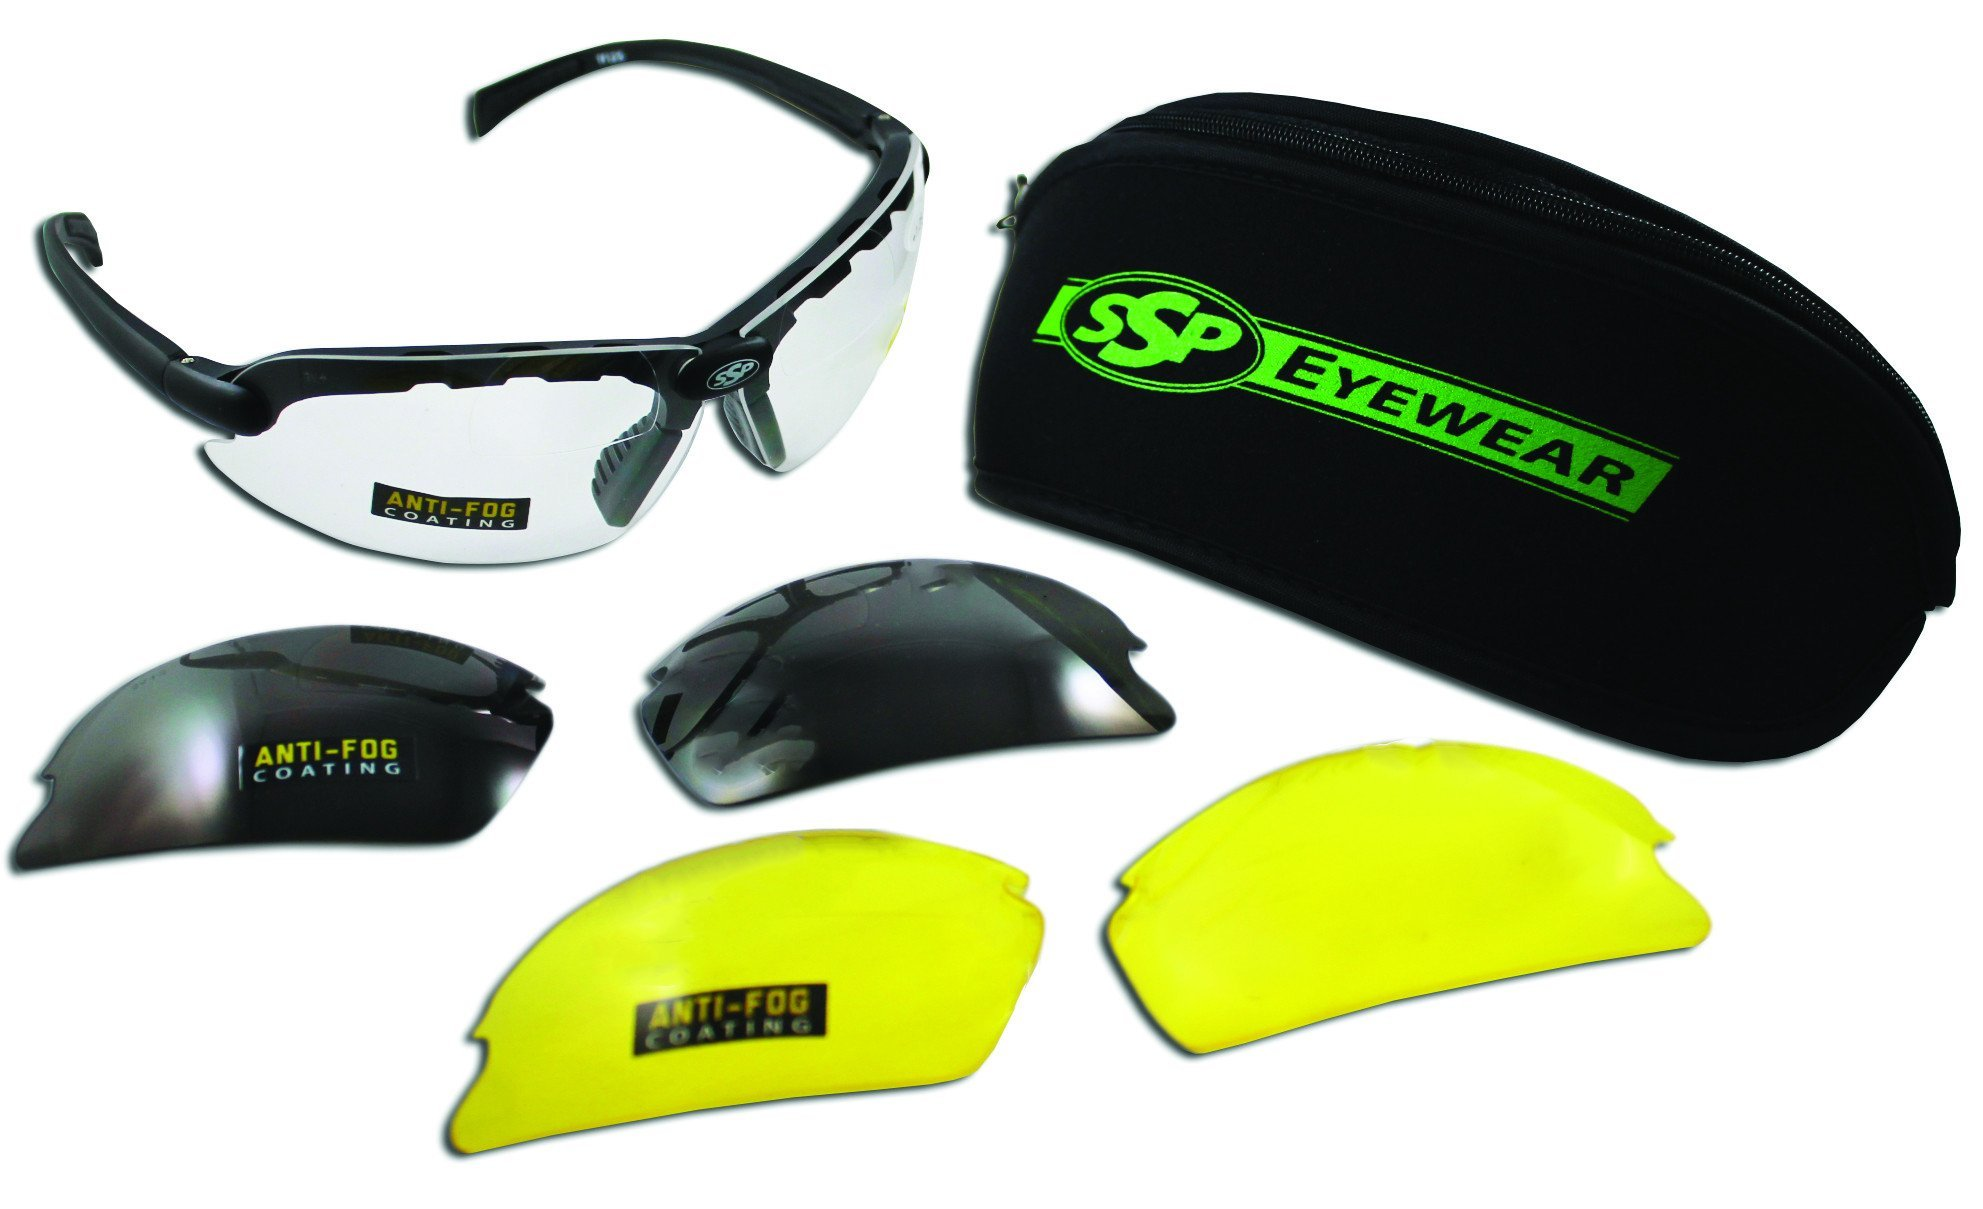 SSP Eyewear 2.00 Bifocal Shatterproof Shooting Glasses Kit with Assorted Color Lenses, DENIAL 2.00 by SSP Eyewear